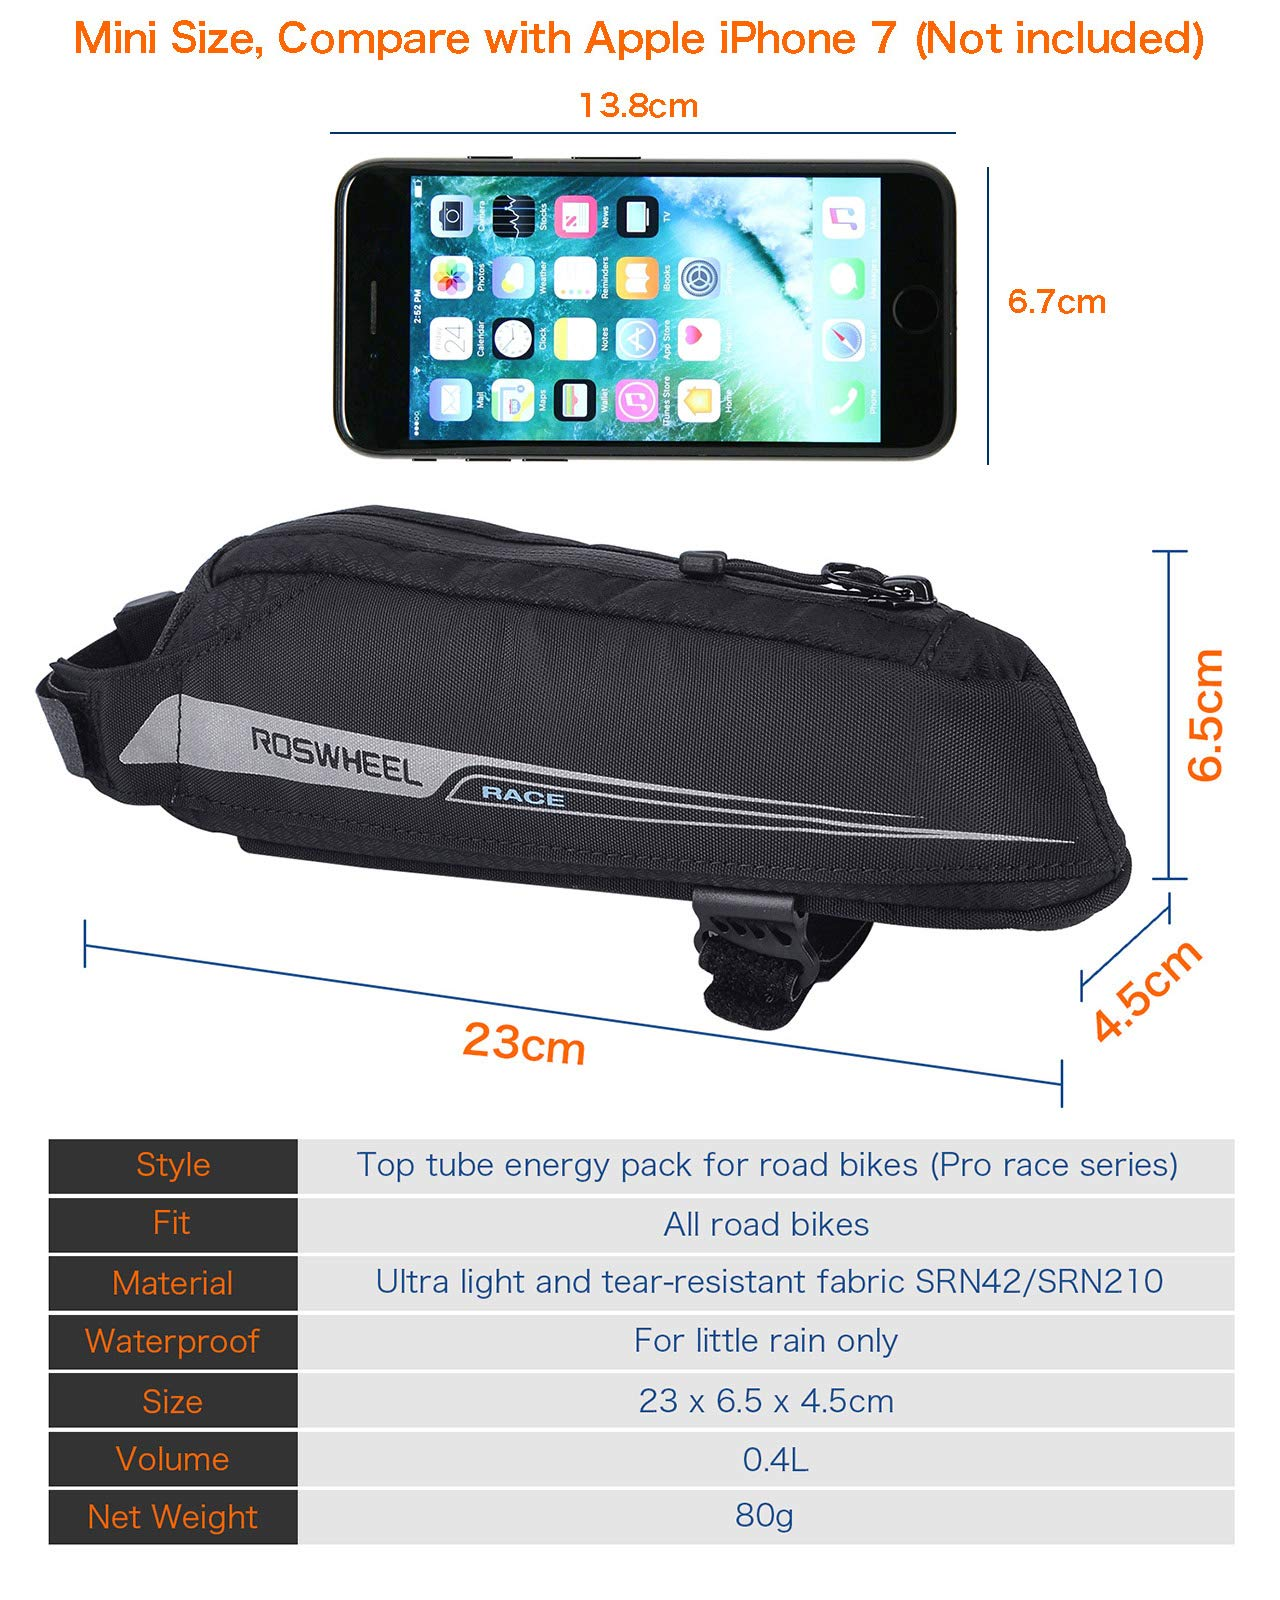 FlexDin Bicycle Frame Energy Bag, Road Racing/Touring / Triathlon Aerodynamic Bike Top Tube Cycling Fuel Bag Food Pouch Waterproof 420D 0.4L Black by FlexDin (Image #5)